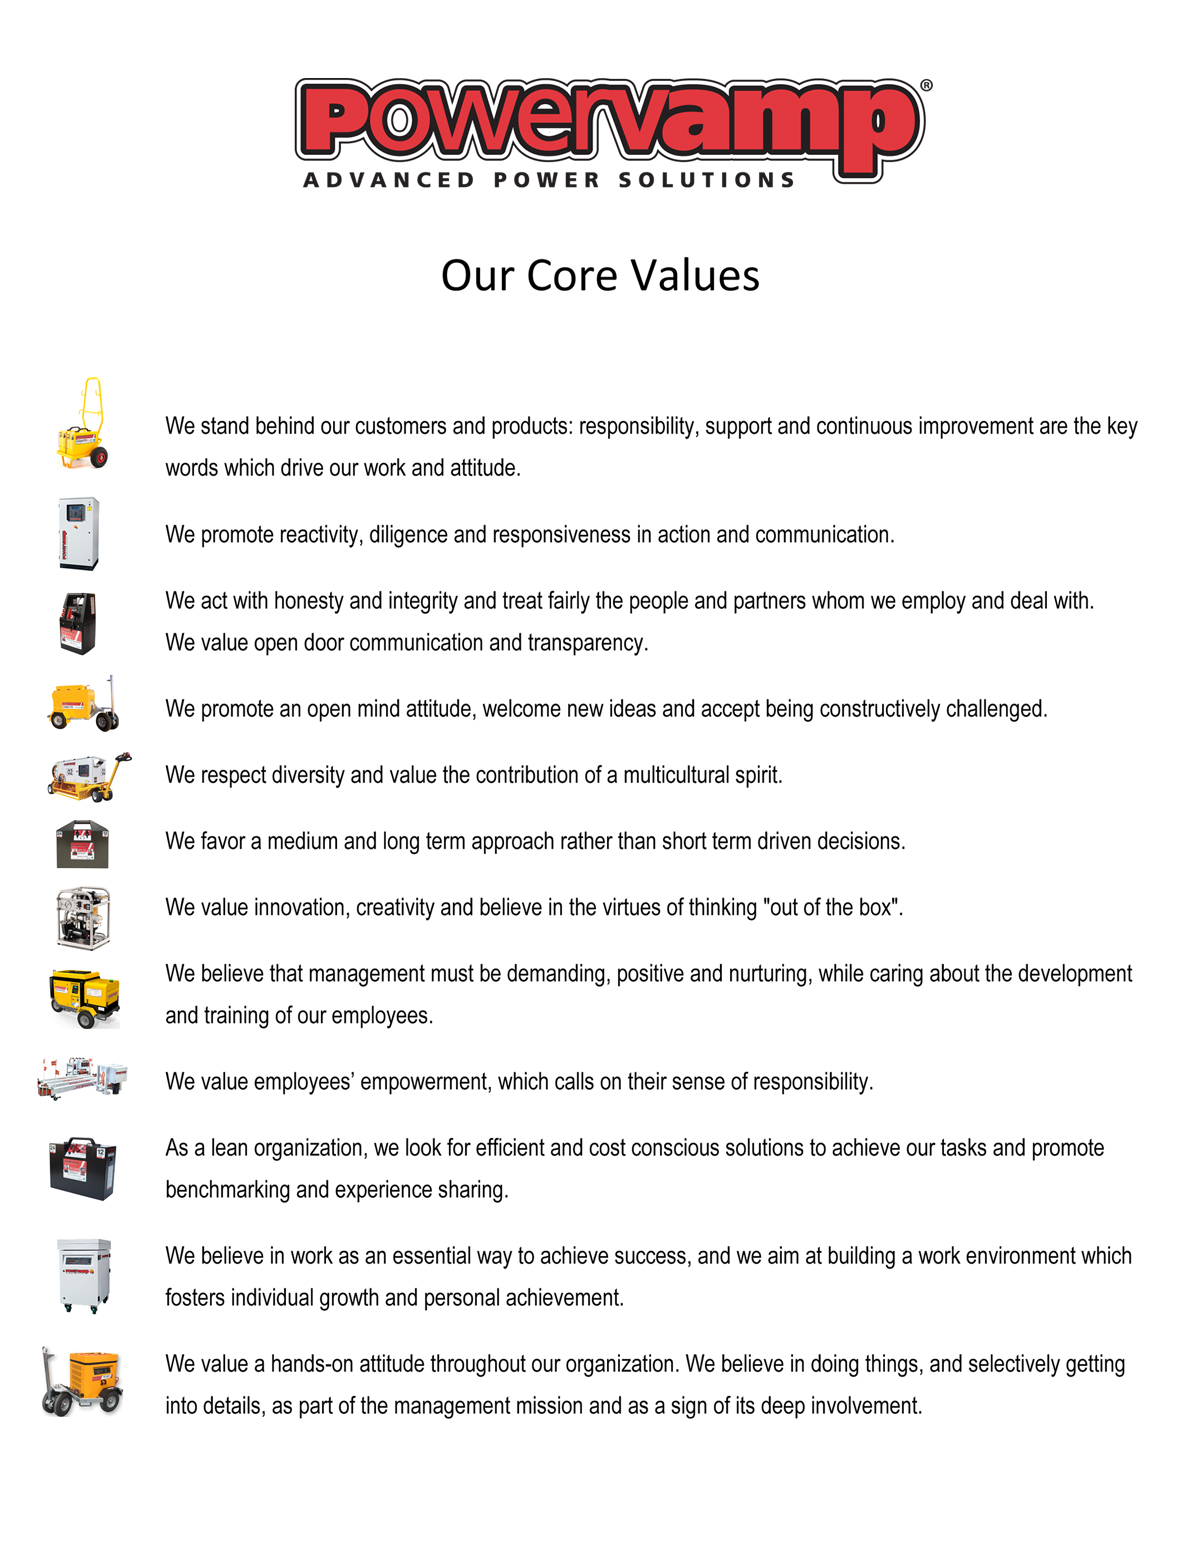 Powervamp - Core Values